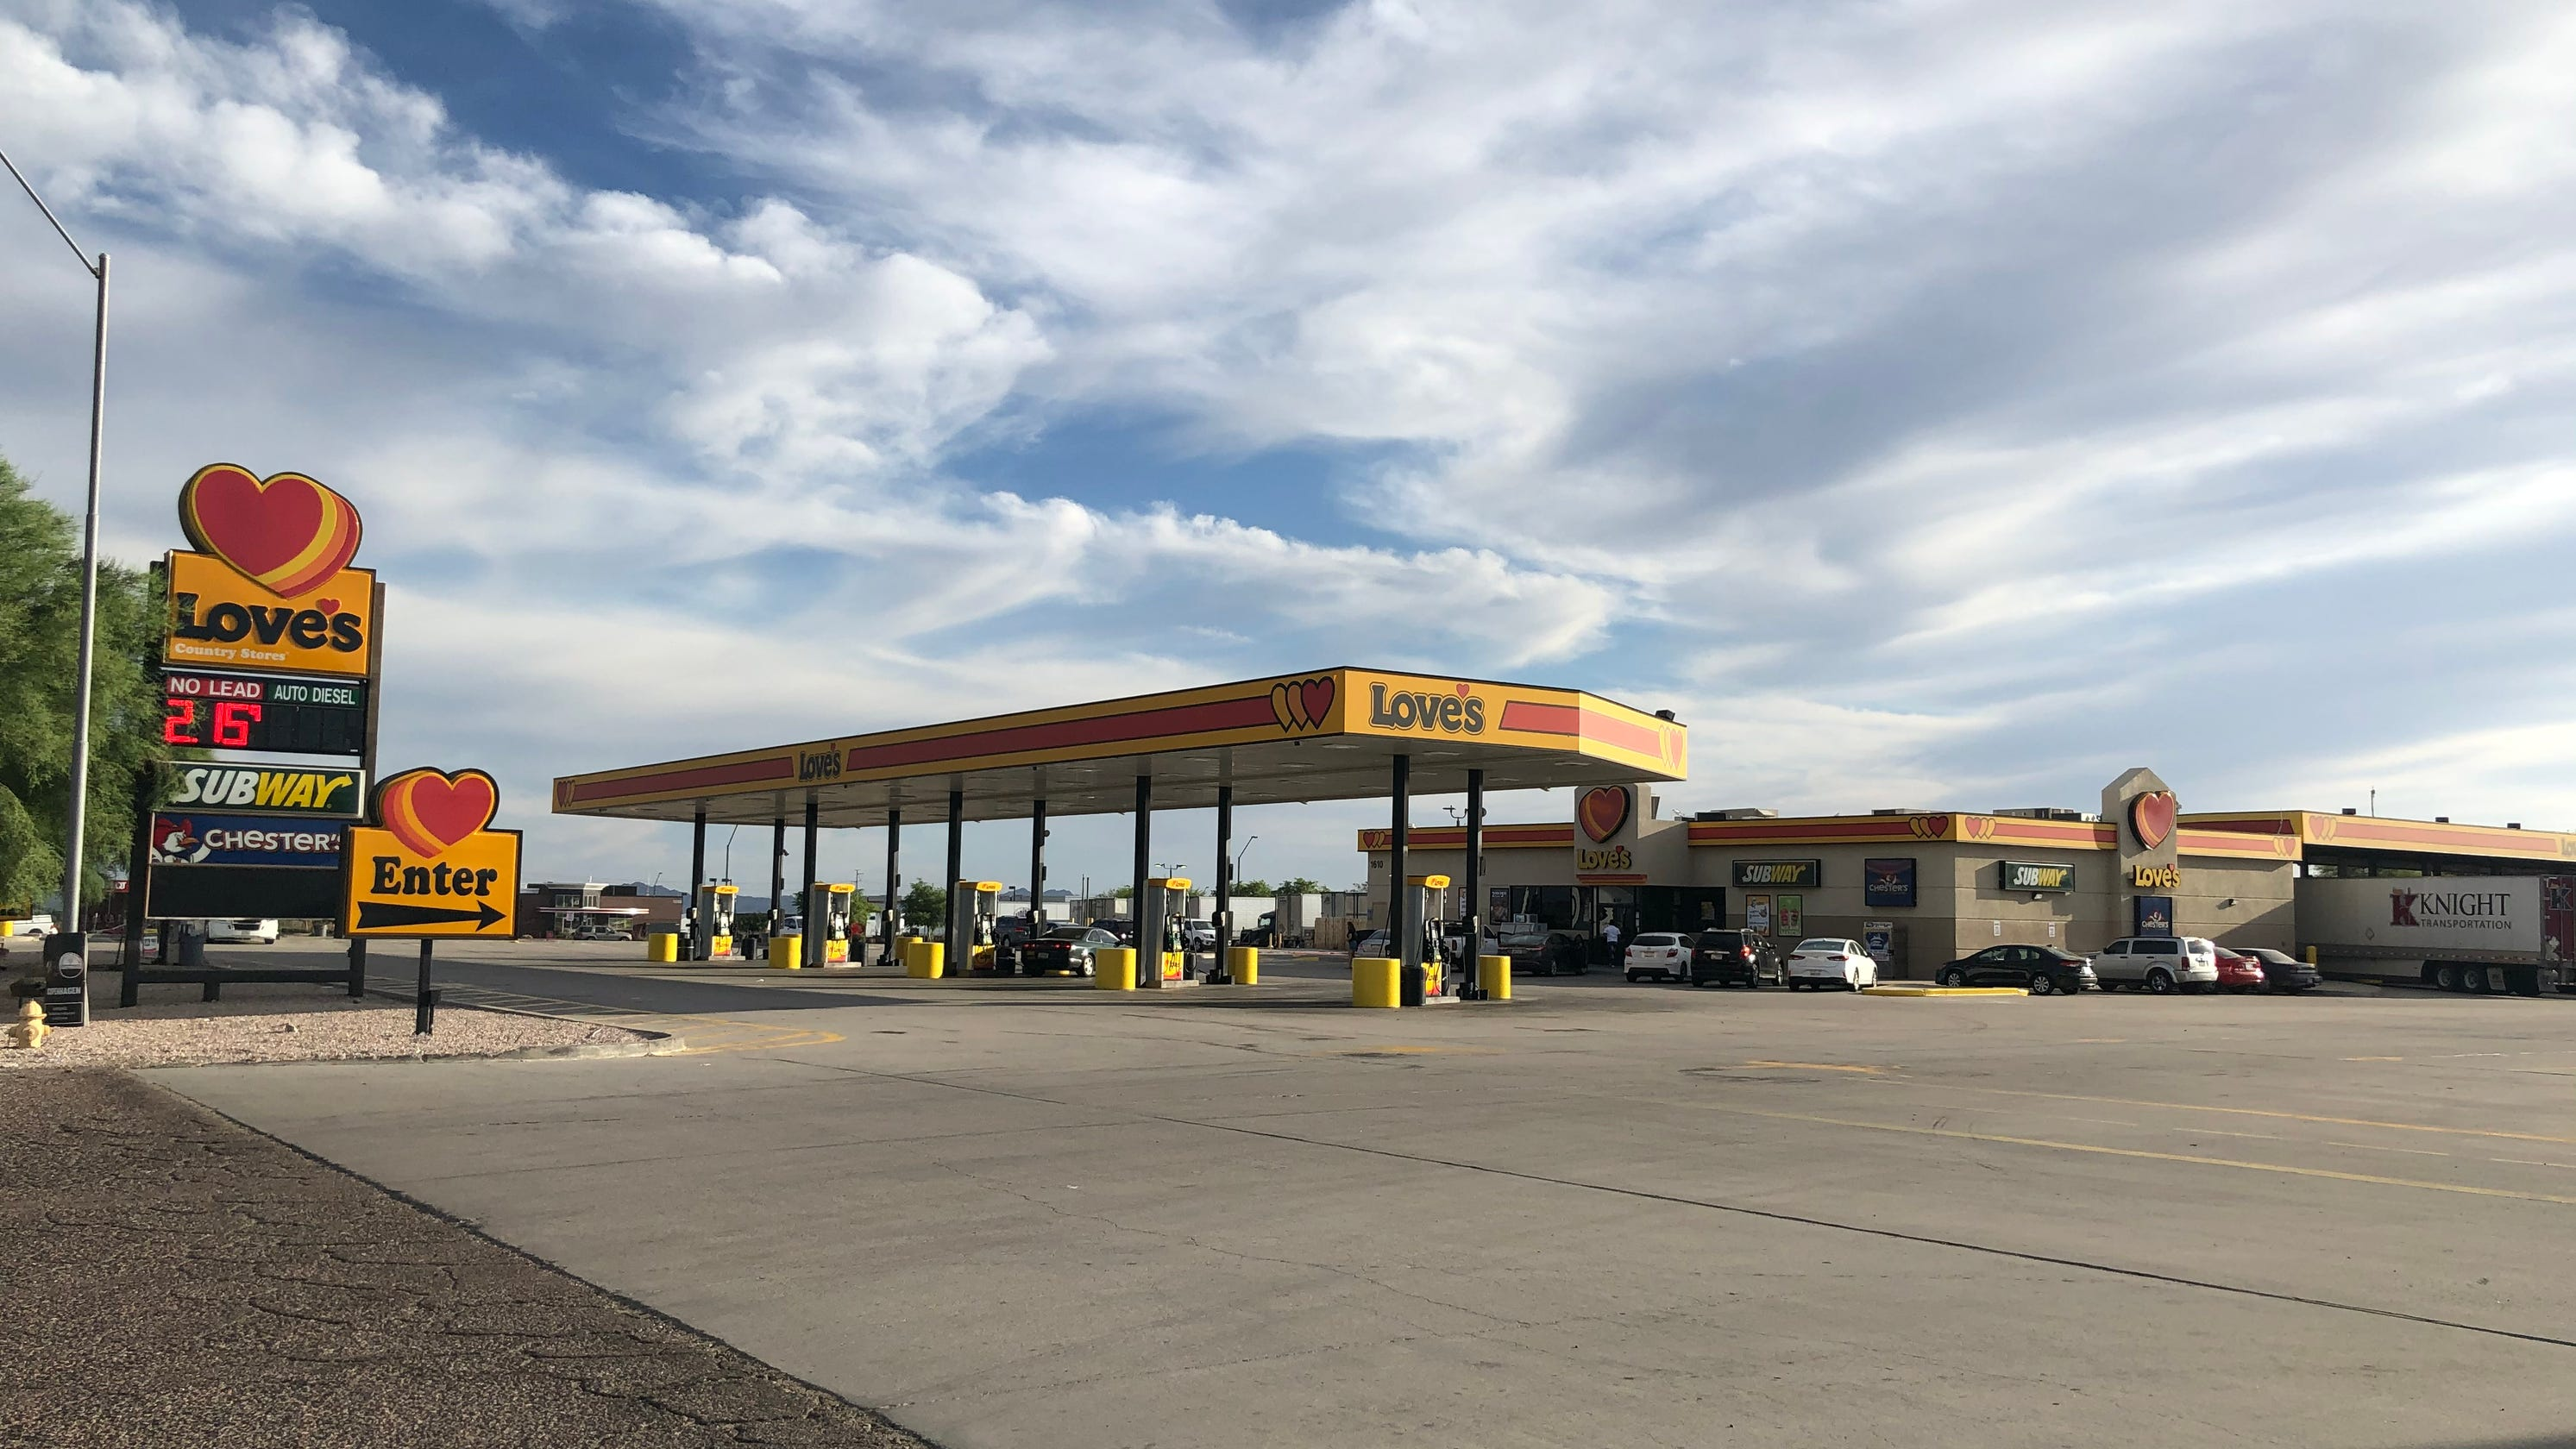 'This is not a done deal': Love's says potential Glendale truck stop could be months out